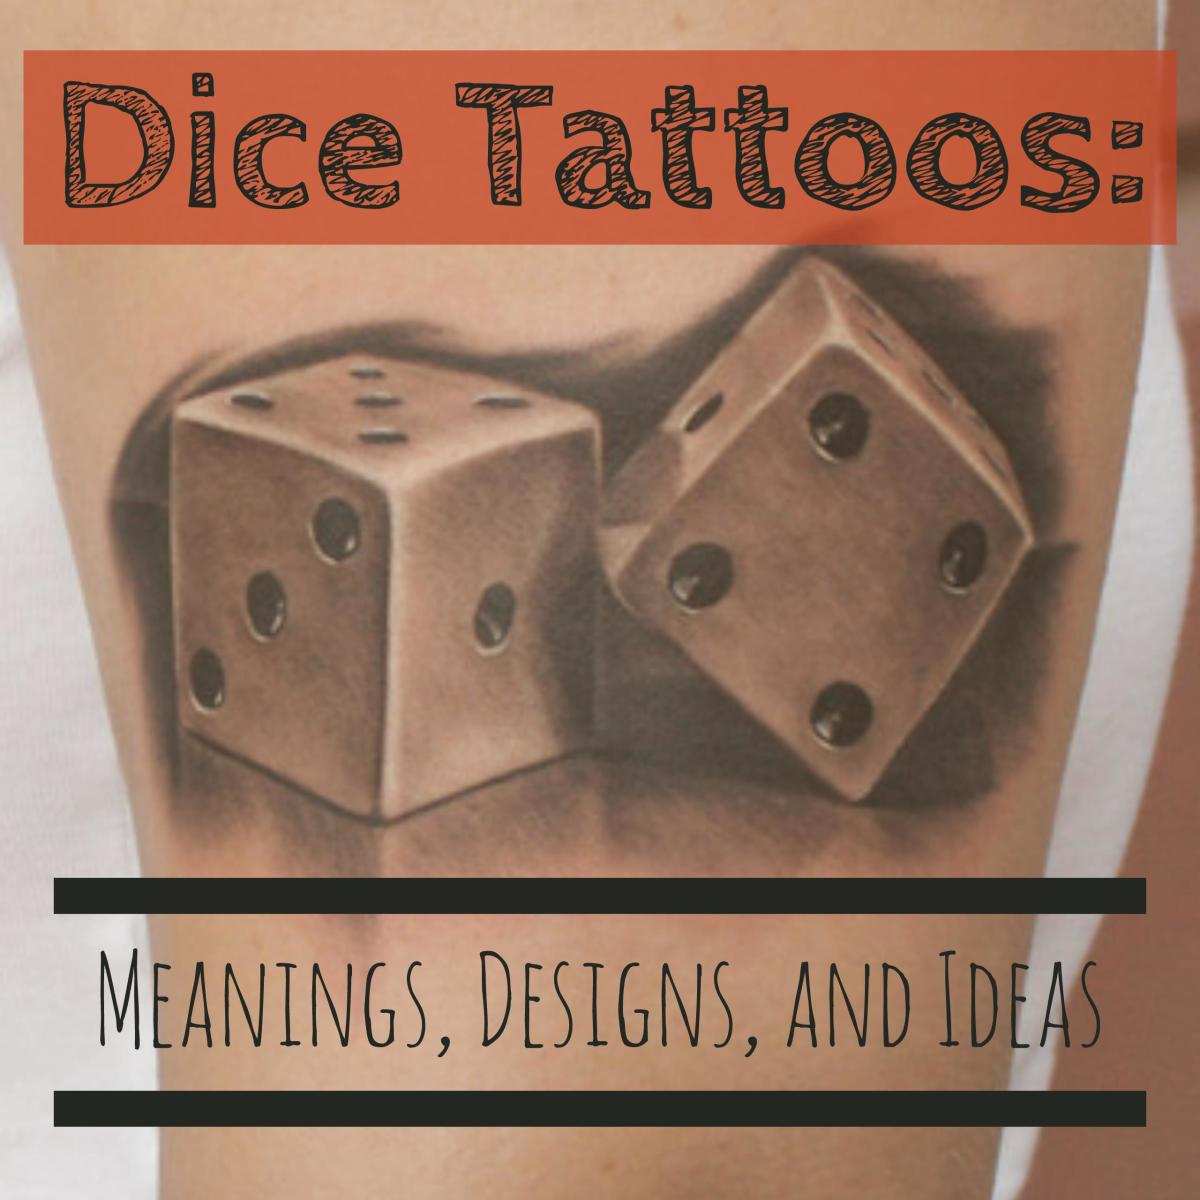 Dice tattoos meanings designs and ideas tatring buycottarizona Images